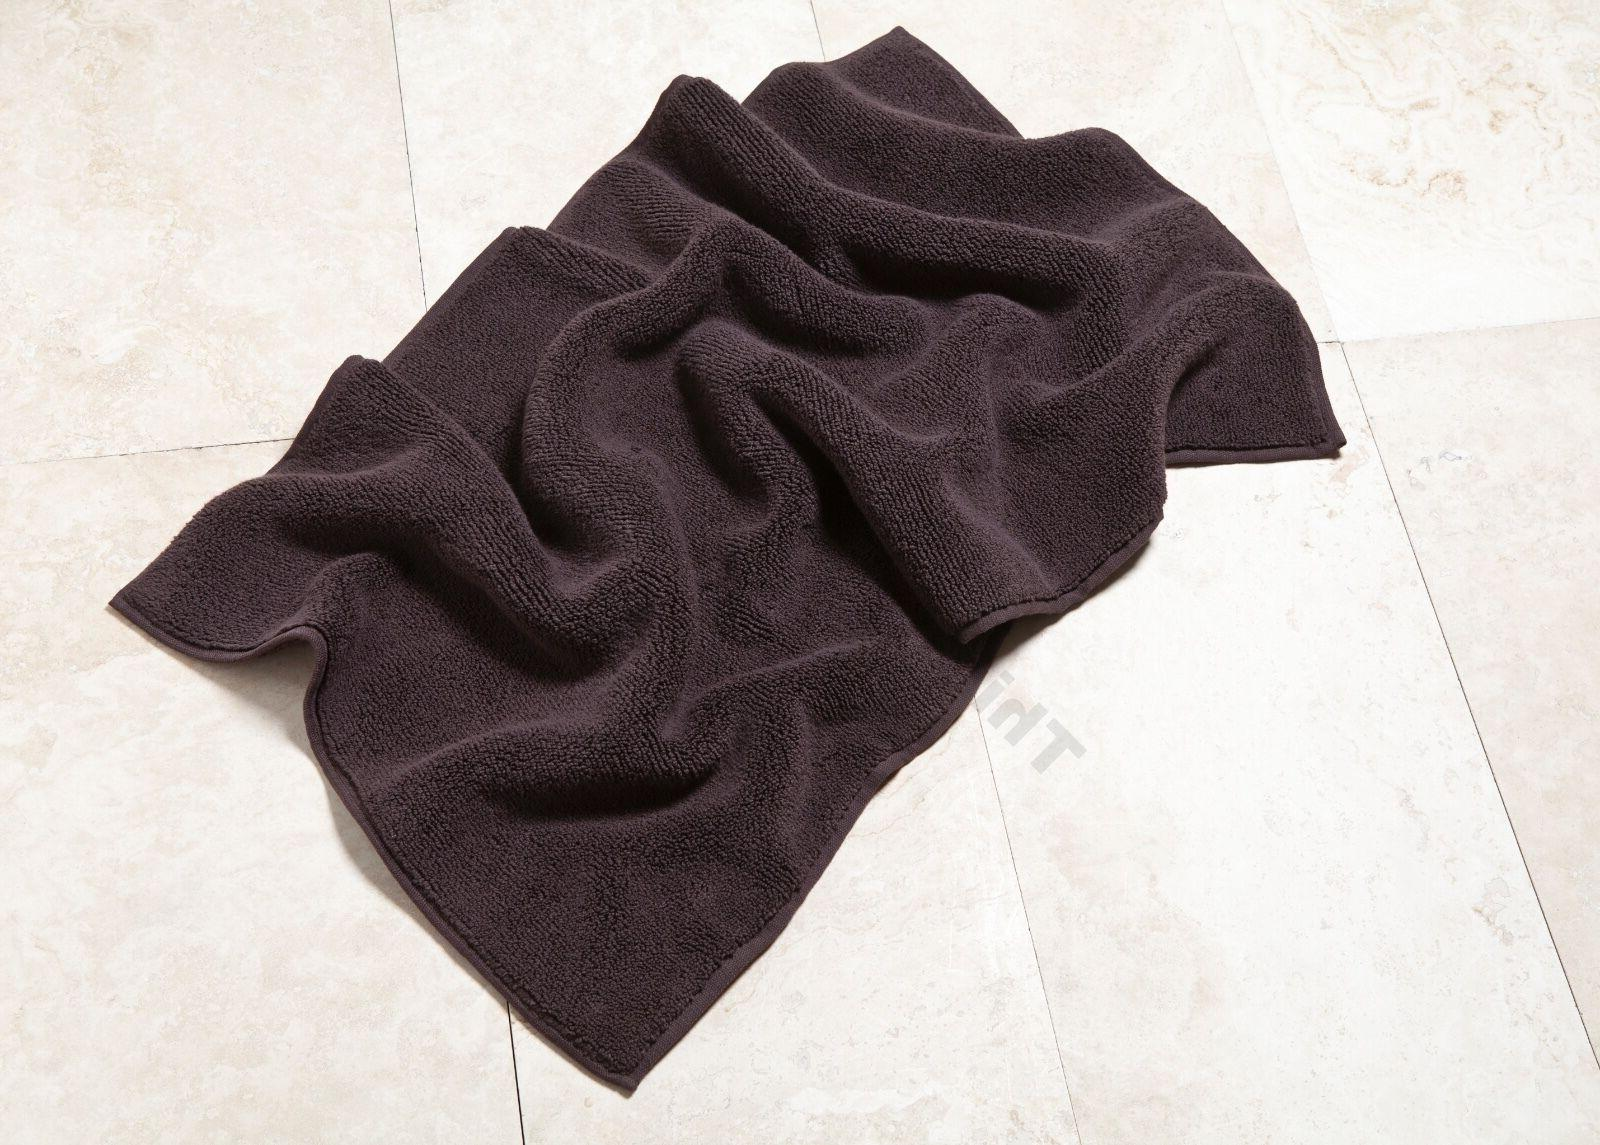 4-Pc Towels -Complimentary Matching Mat